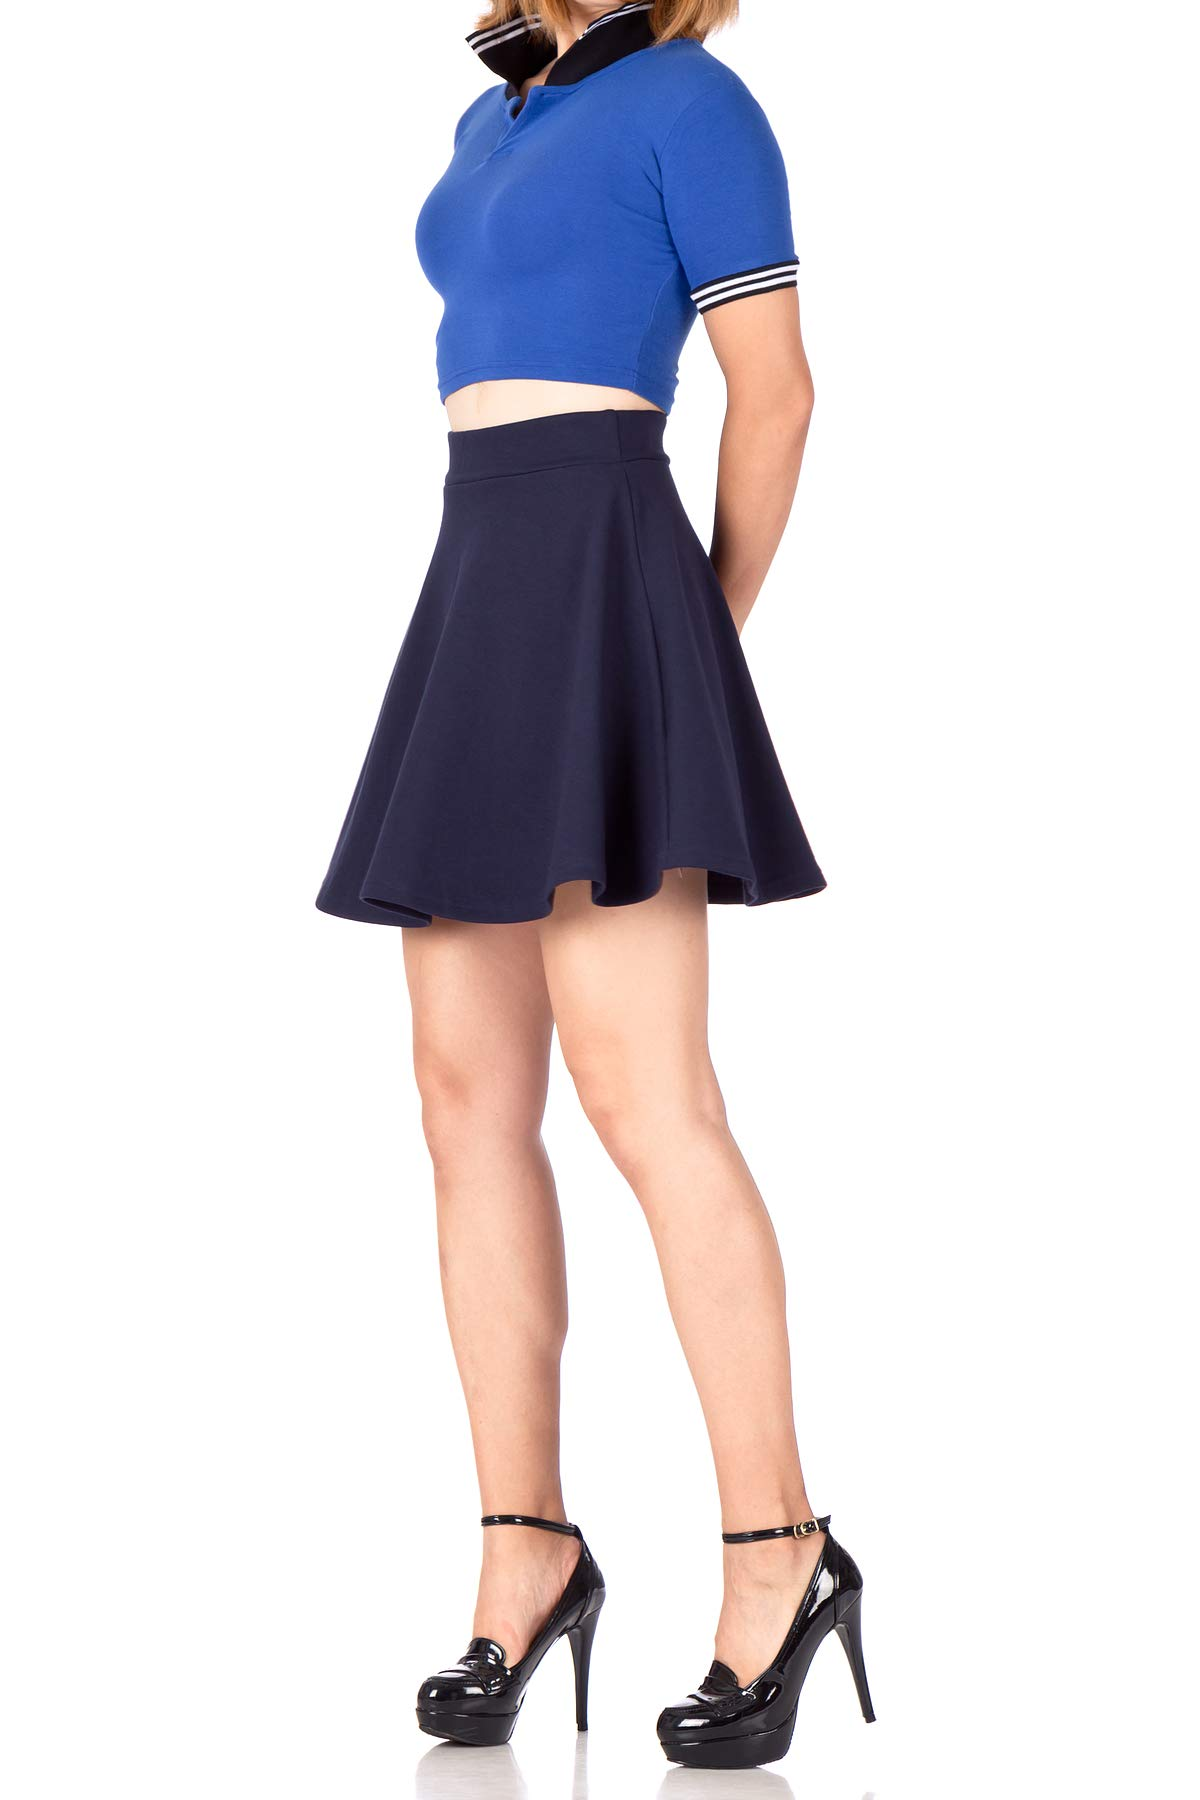 Basic Solid Stretchy Cotton High Waist A-line Flared Skater Mini Skirt (S, Navy)